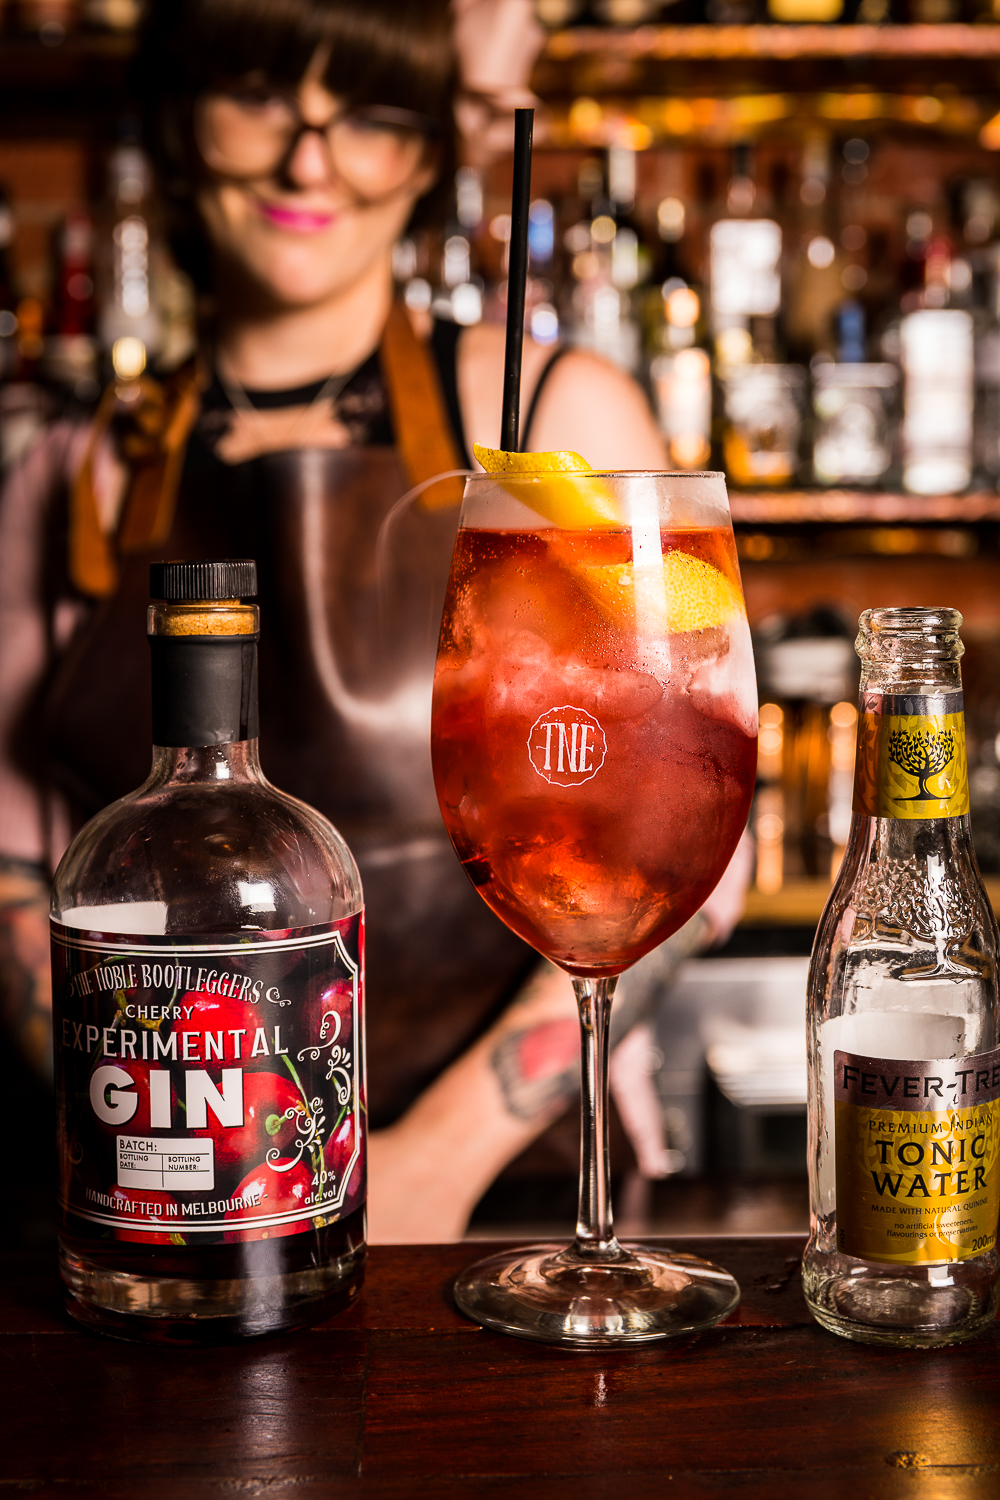 Noble Bootleggers Cherry Gin & Tonic - 30mls Noble Bootleggers Cherry Gin120mls Quality Indian Tonic WaterLemon peel garnishBuild all ingredients into a highball glass, add ice and top with tonic. Garnish with a lemon peel twist.